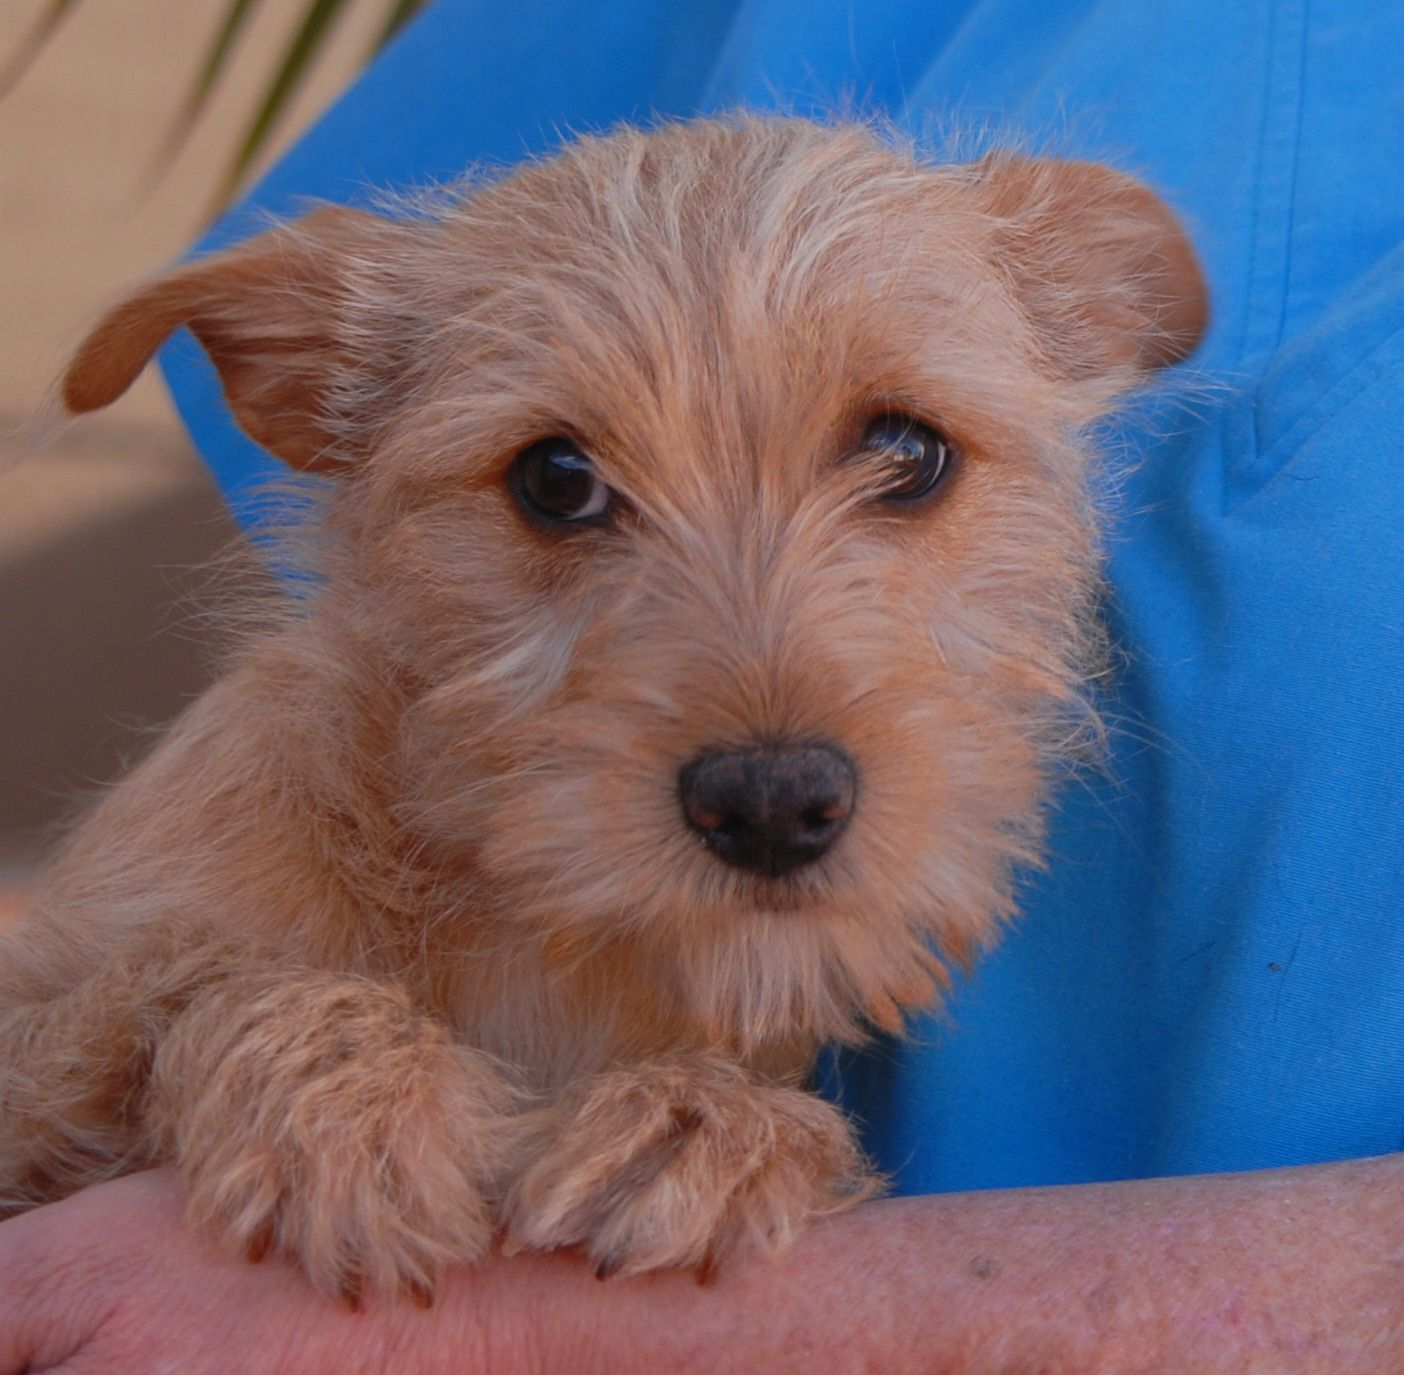 Doesn T Anyone Want Me Dawn Is A Precious Baby Girl Found Near A Busy Vegas Intersection With No Sign Of Responsible Ownersh Dog Adoption Pet Adoption Dogs